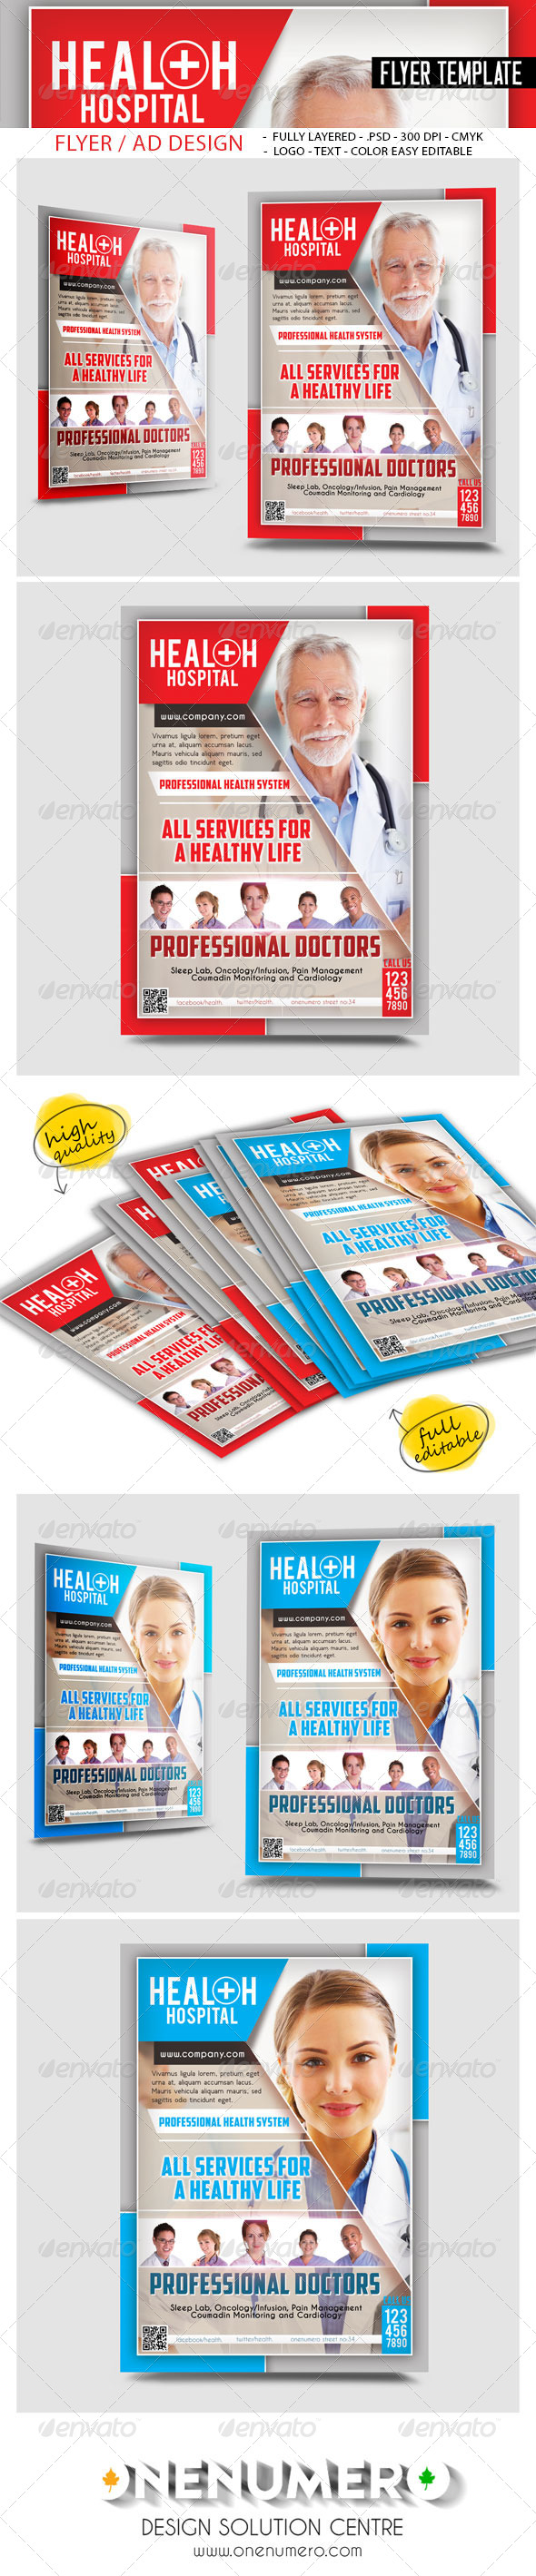 GraphicRiver Health Hospital Flyer Templates 7793064